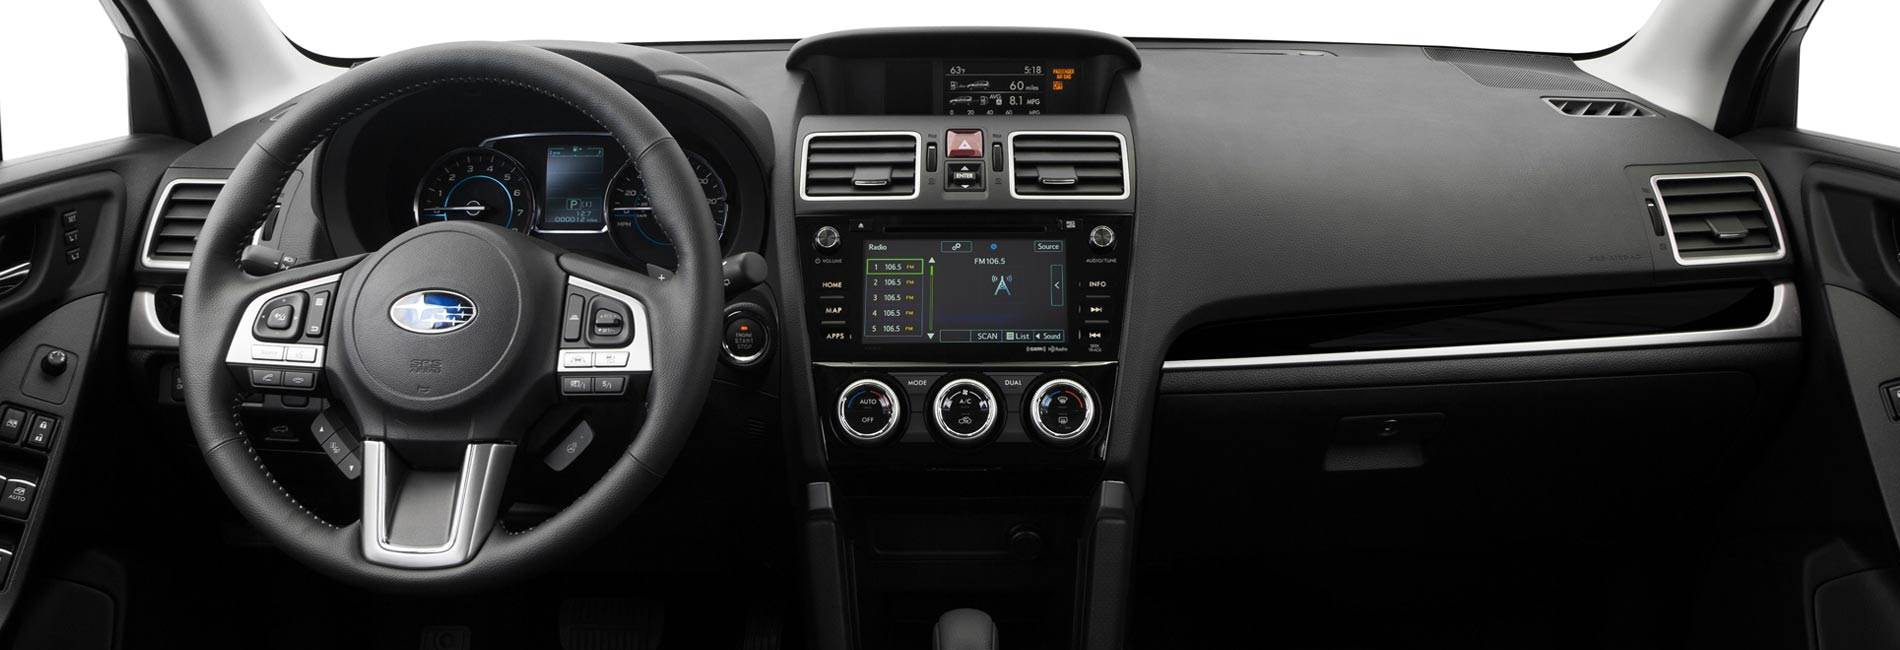 2018 Subaru Forester Interior Features